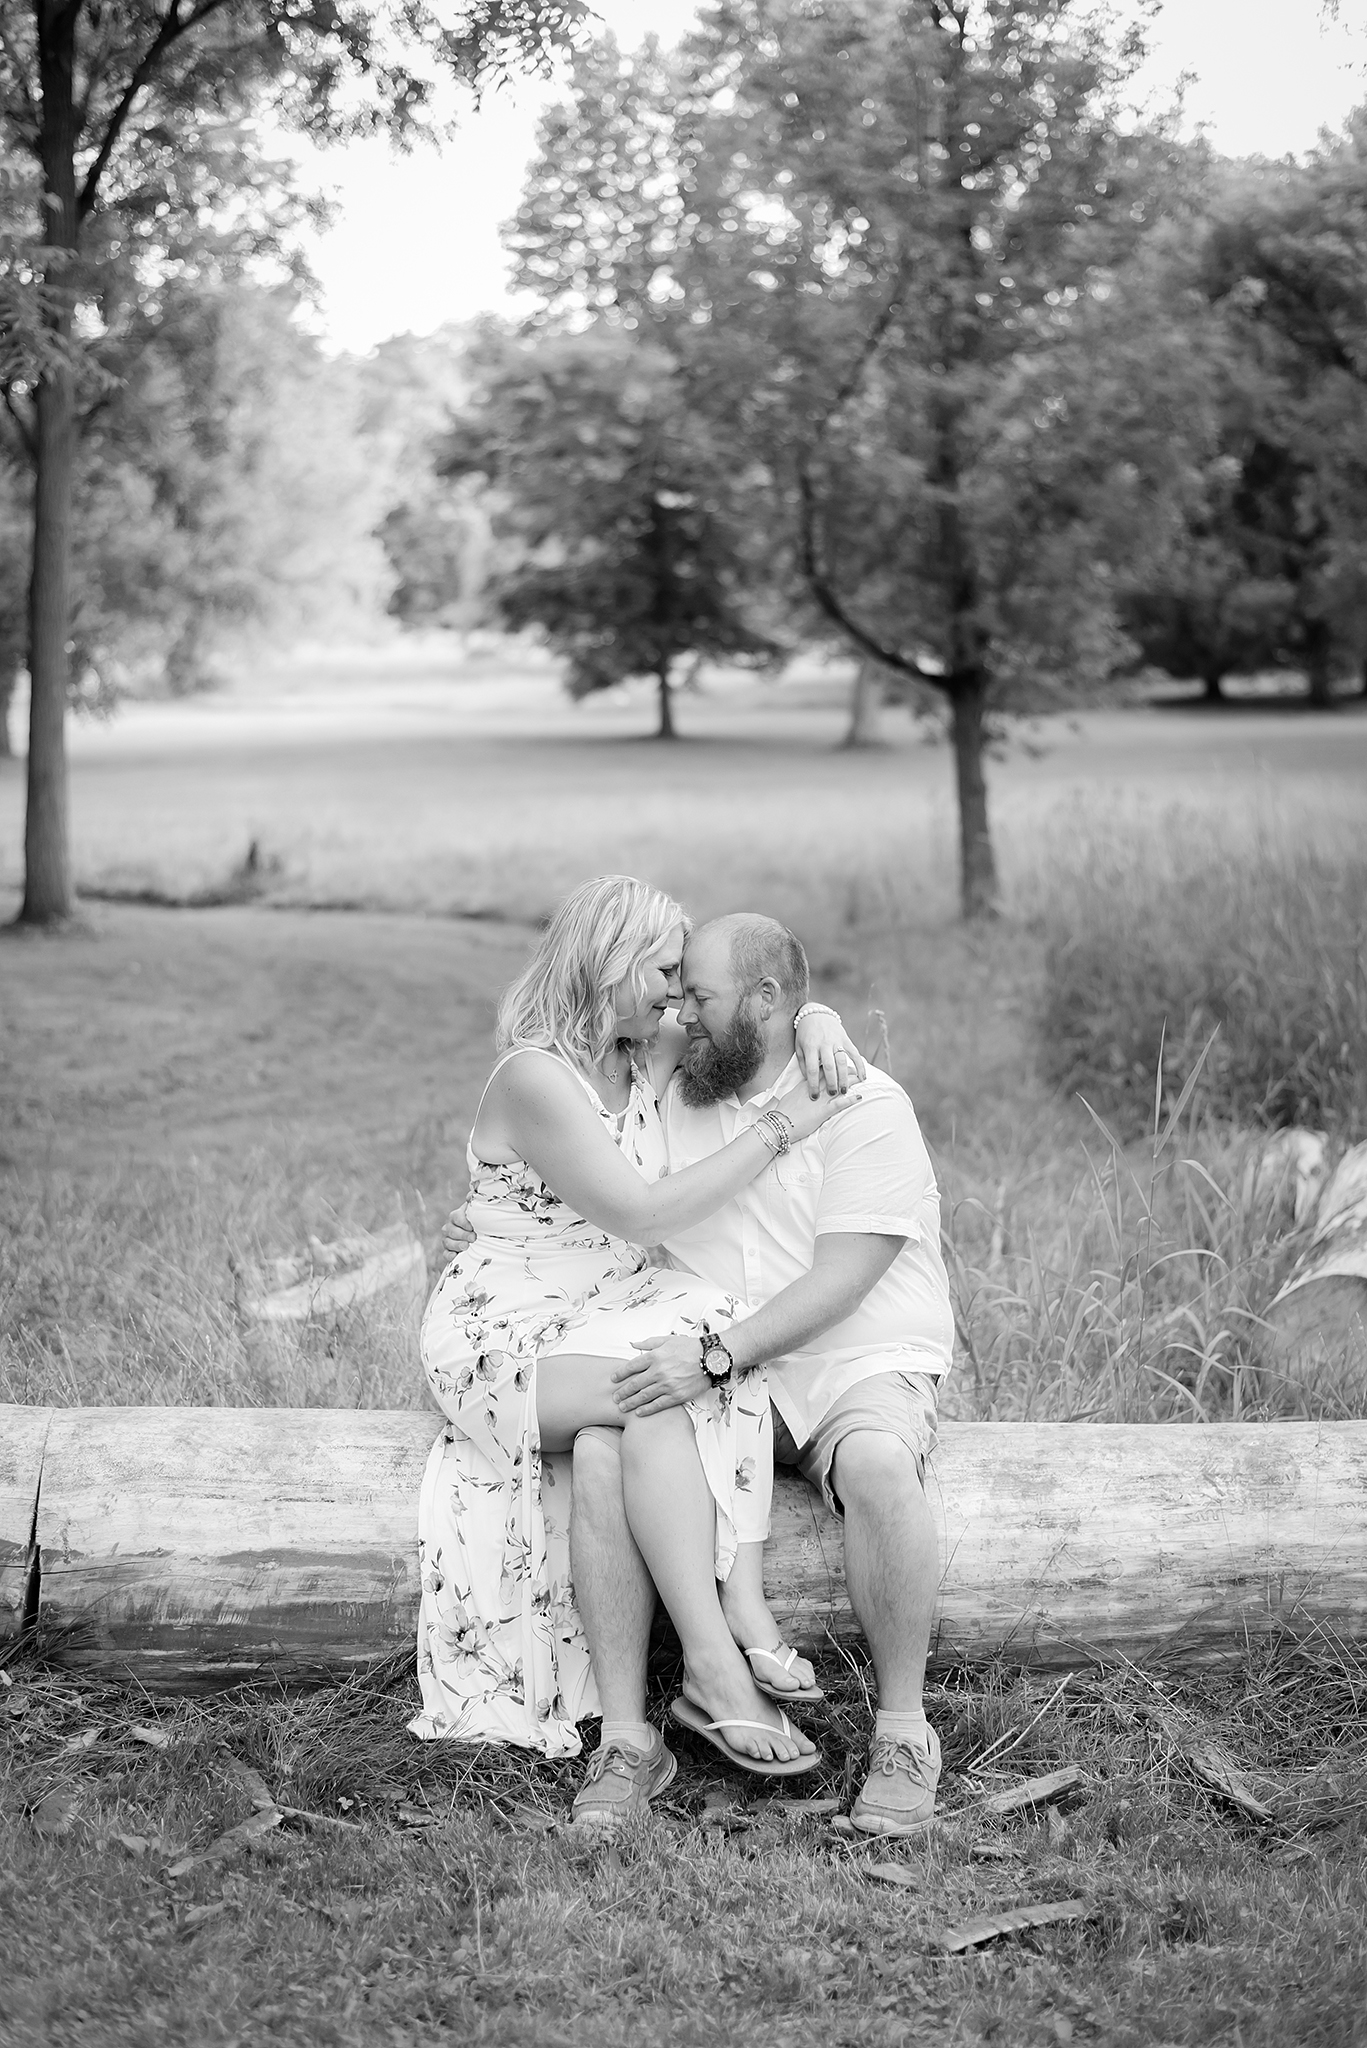 Lindsay-Adkins-Photography-Michigan-Engagement-And-Wedding-Photographer7